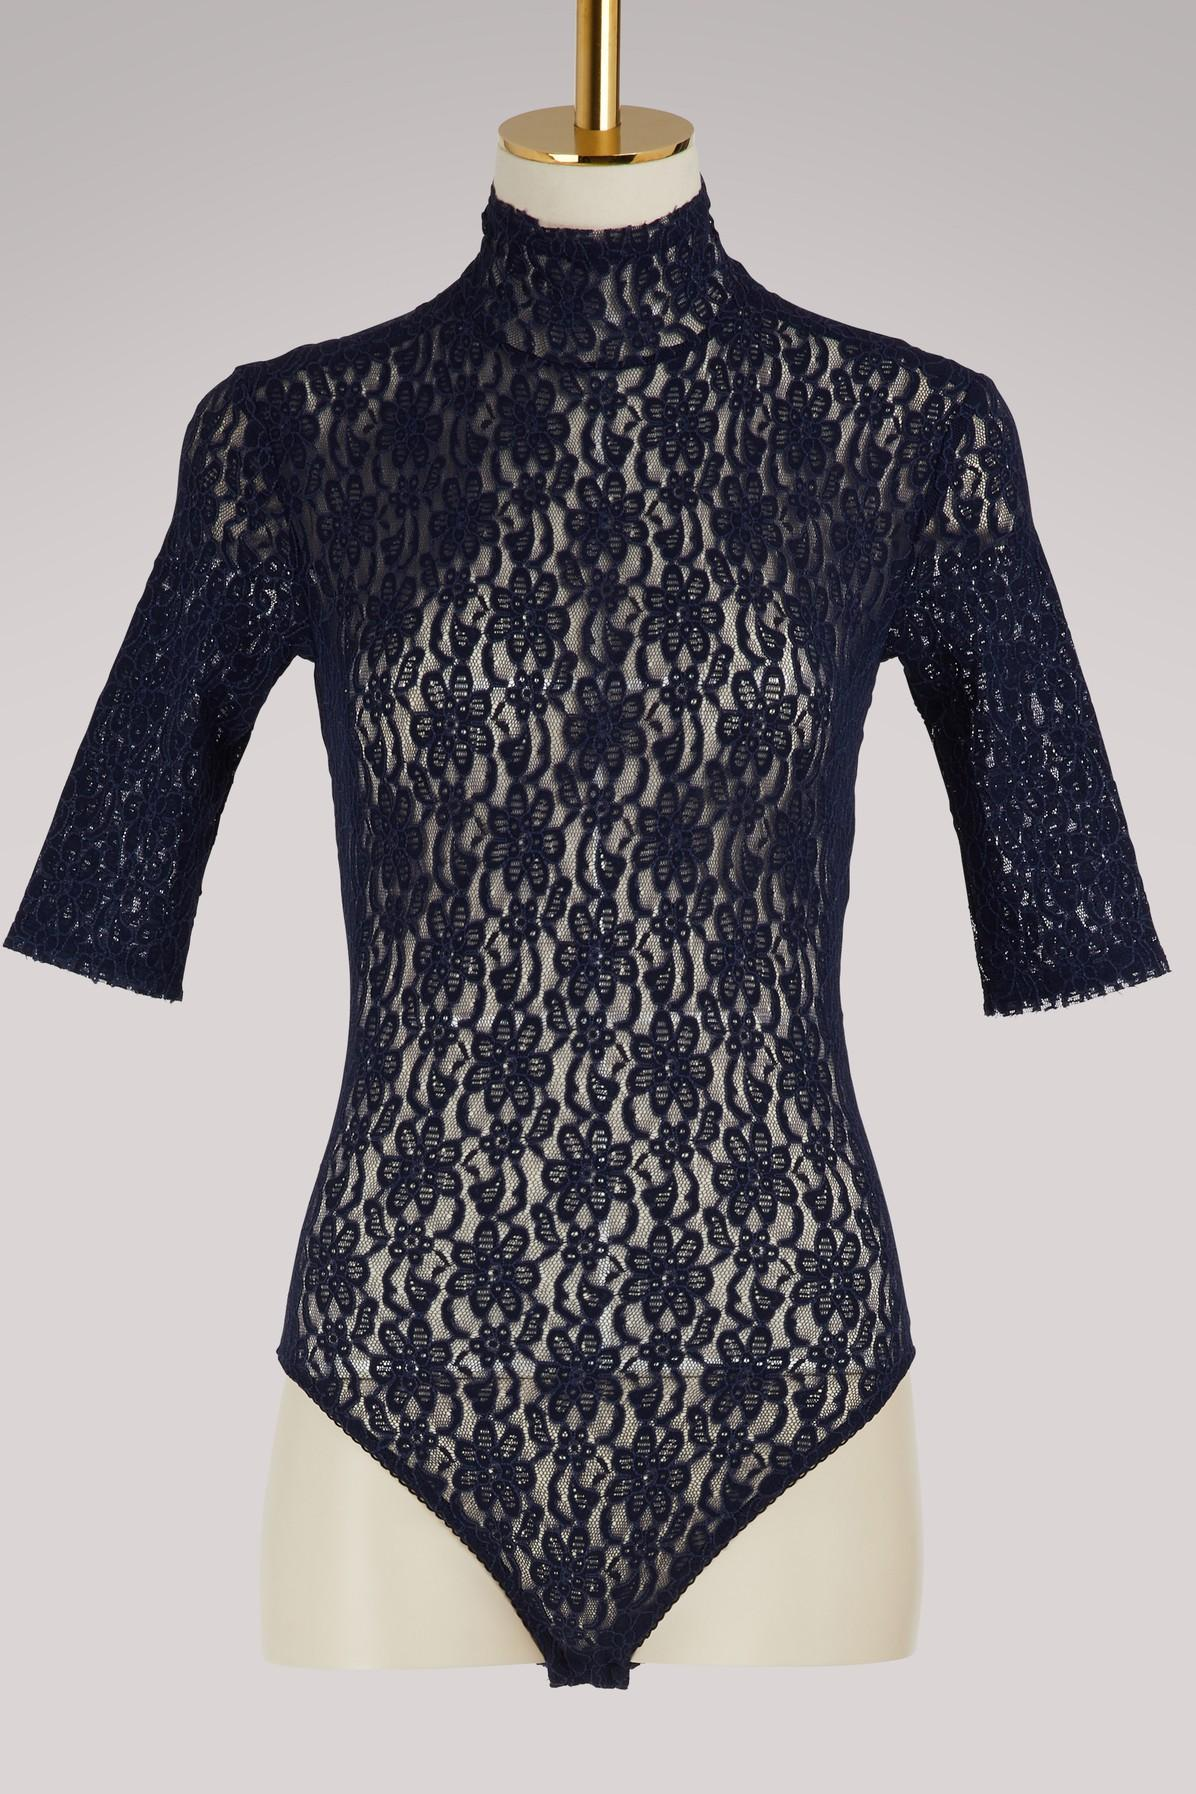 Nina Ricci Lace Leotard In Navy